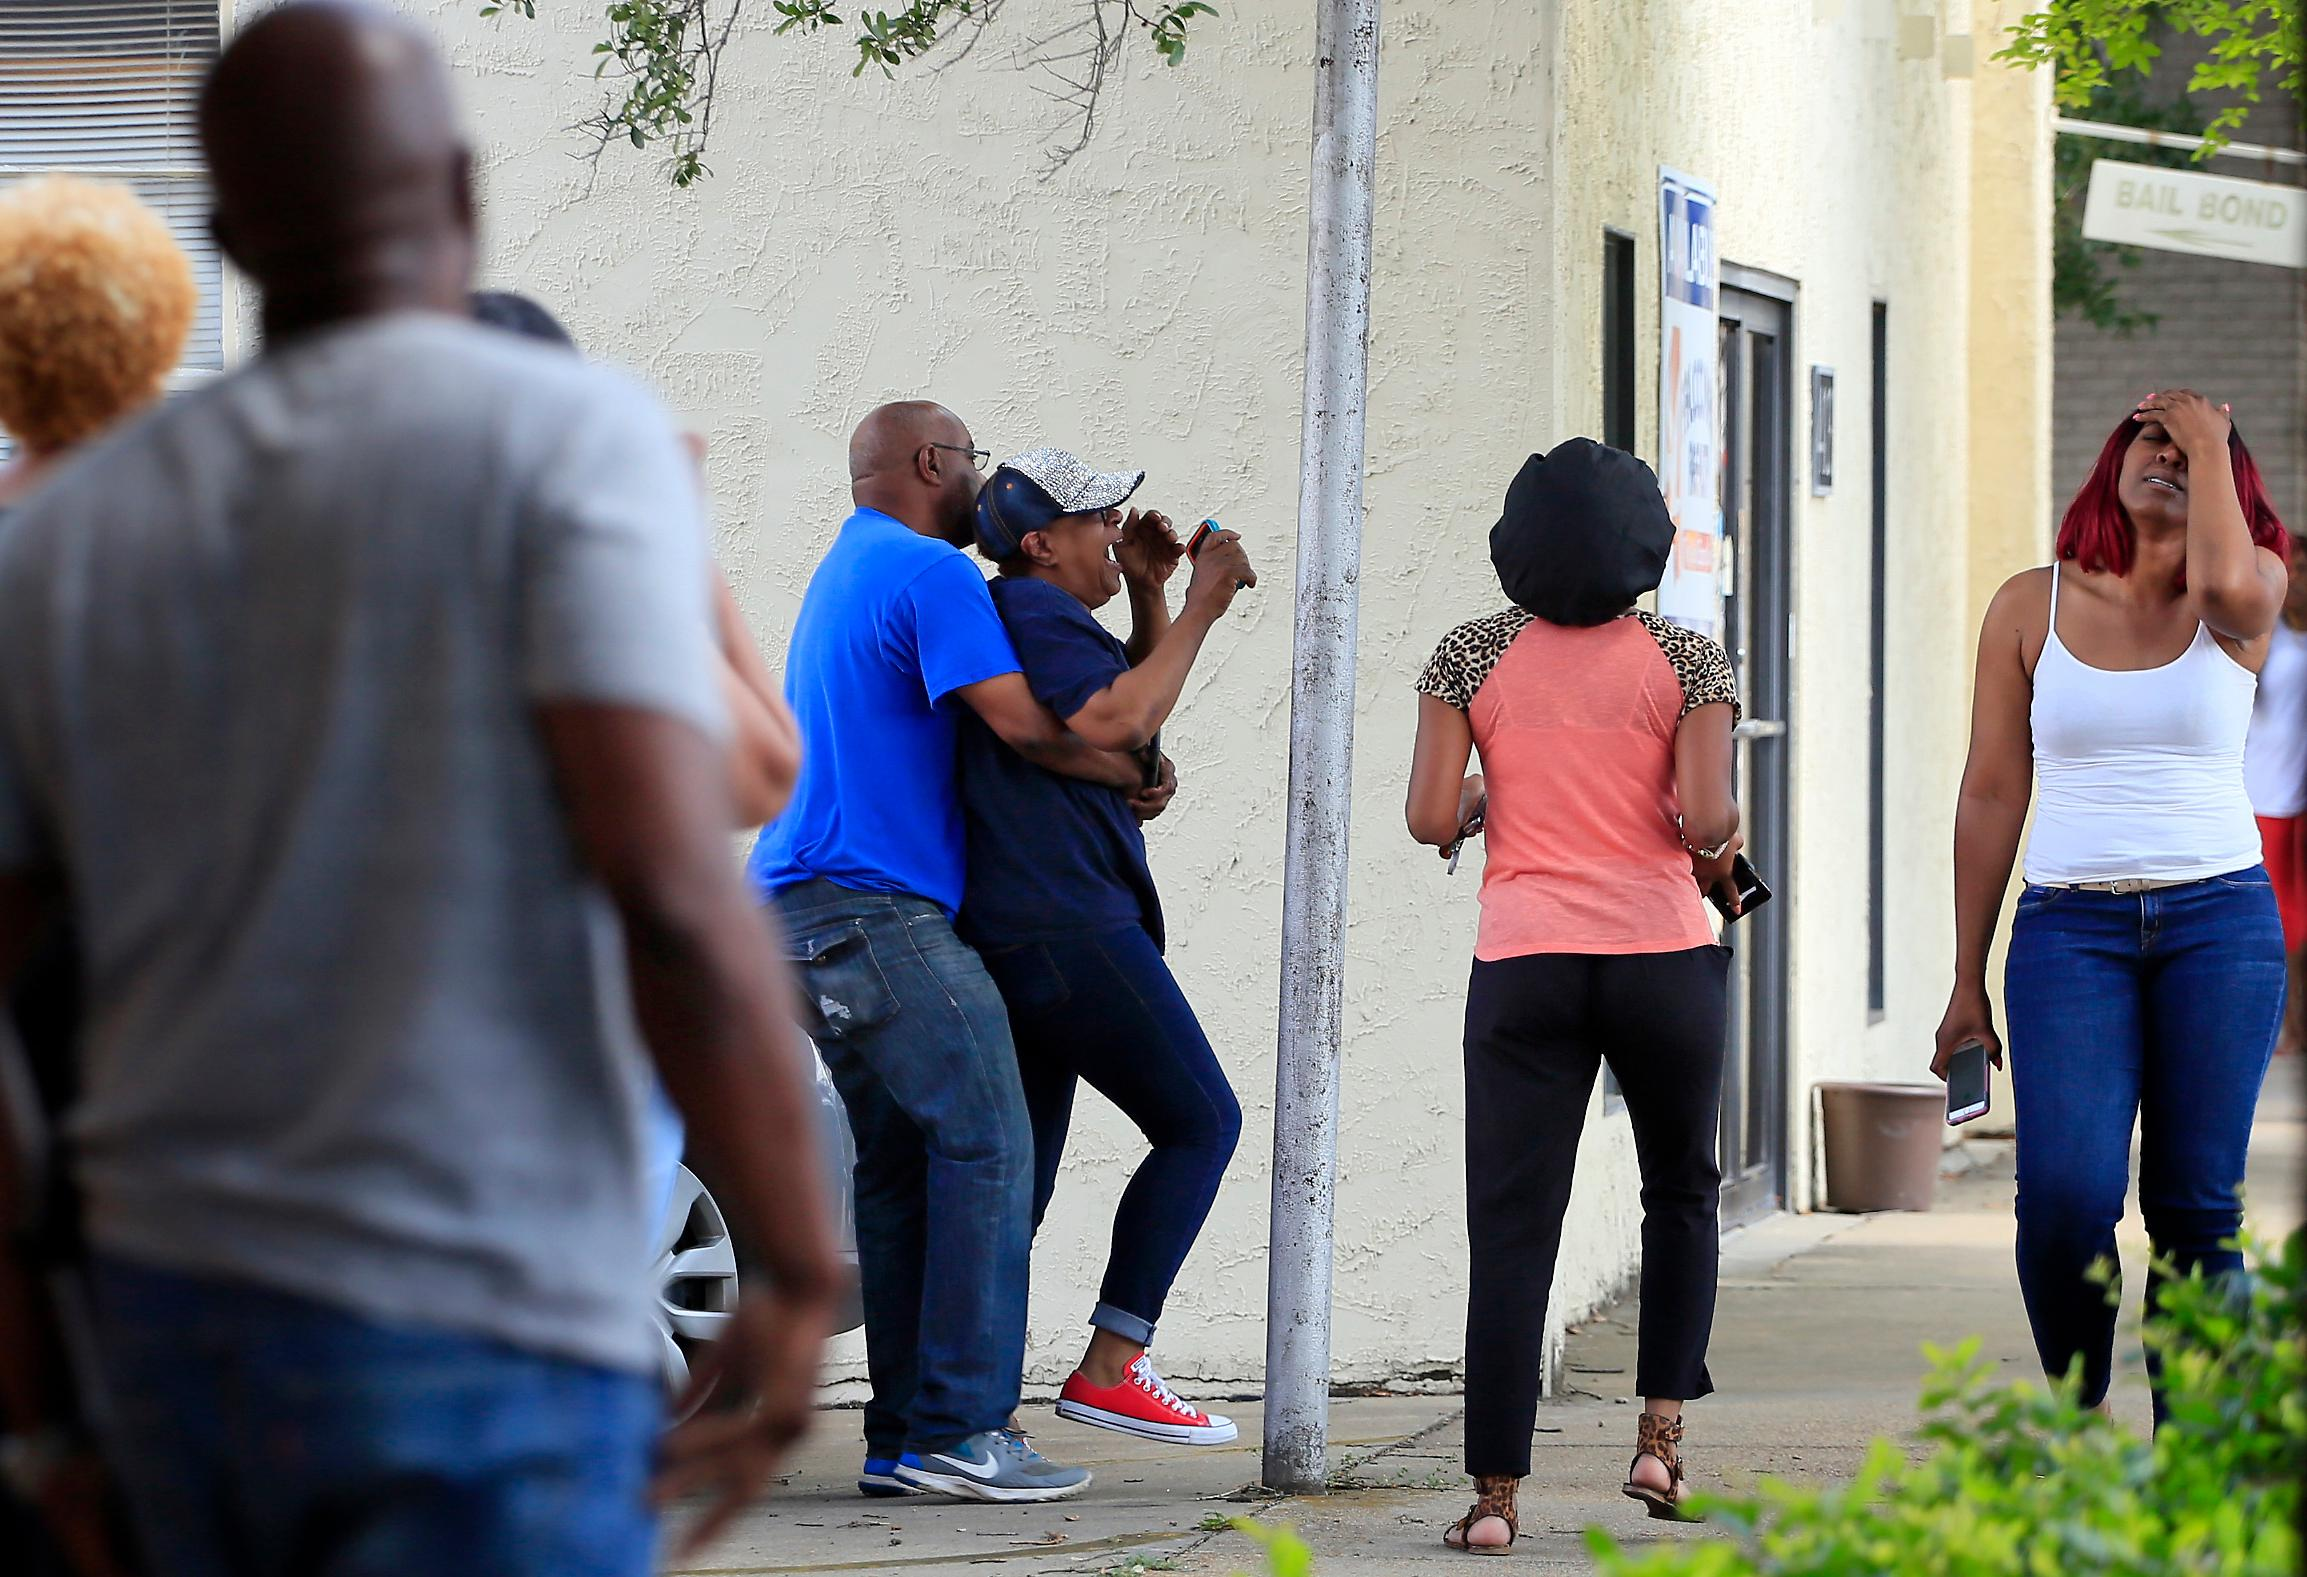 Family members react after finding out the news that Kingston Frazier was found dead after being kidnapped during the theft of his mother's vehicle from a Kroger parking lot Thursday, May 18, 2017, in Jackson, Miss. (Elijah Baylis/The Clarion-Ledger via AP)